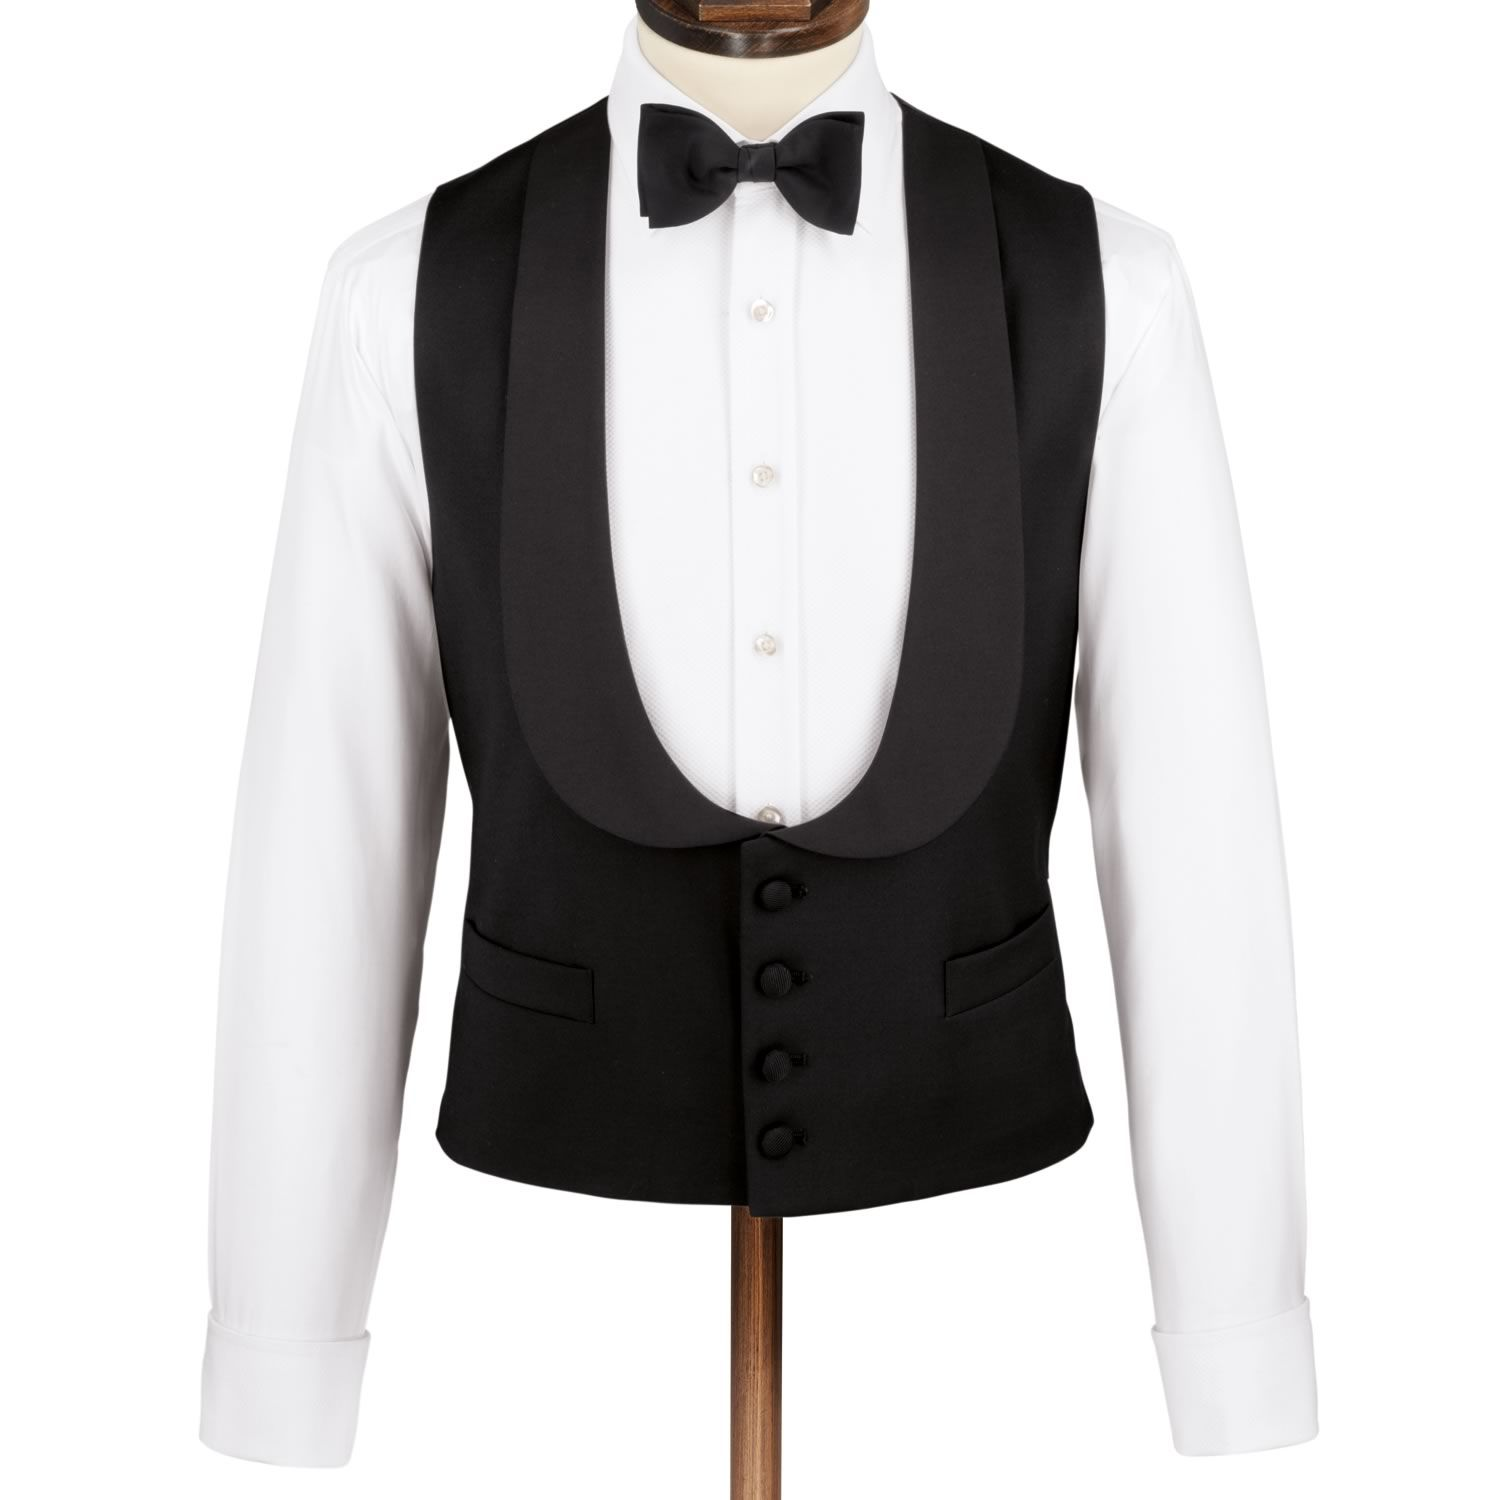 Slim fit dinner suit waistcoat   Waistcoats from Charles ...